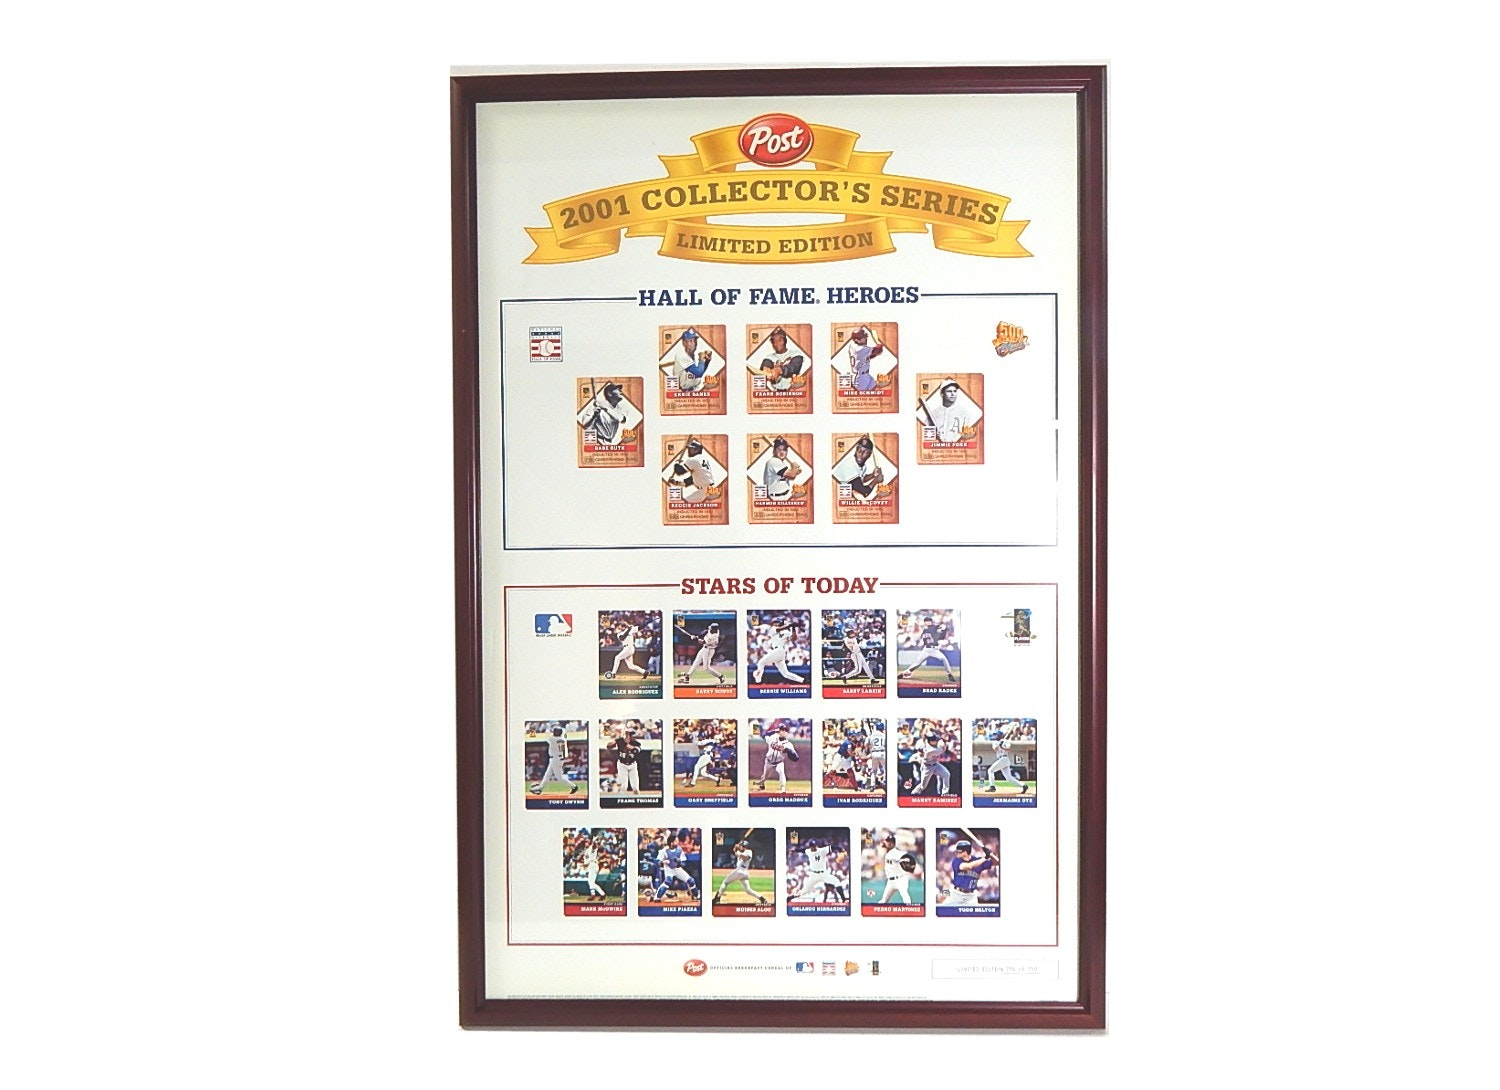 Framed 26x38 Limited Edition Post Baseball 2001 Collector's Series Print